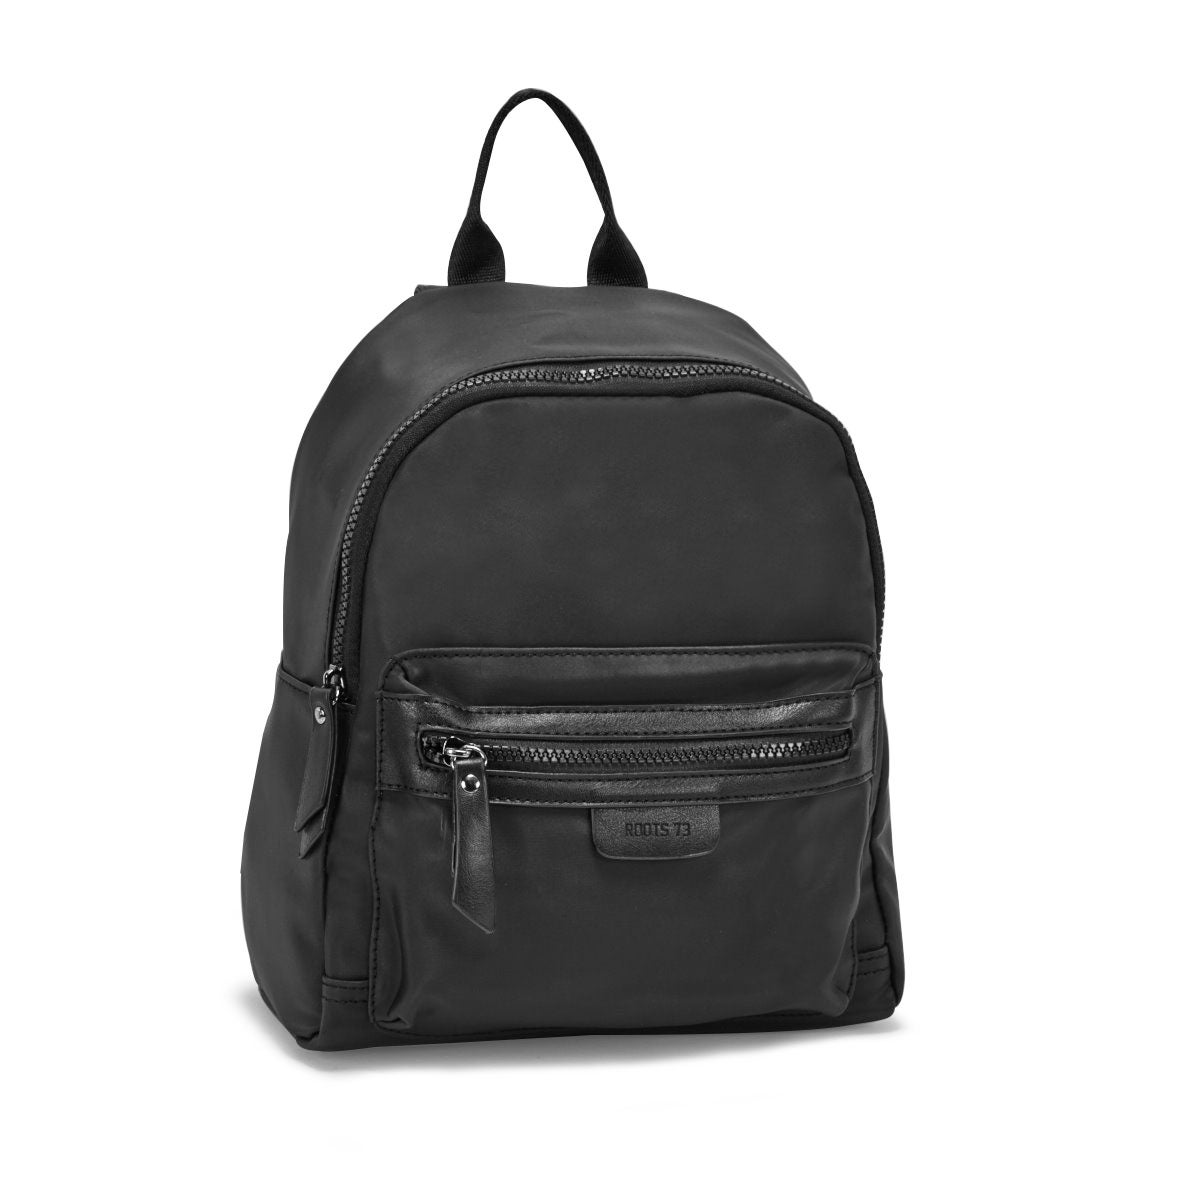 6cf7343ce2 Roots Women s R5567 black mini backpack